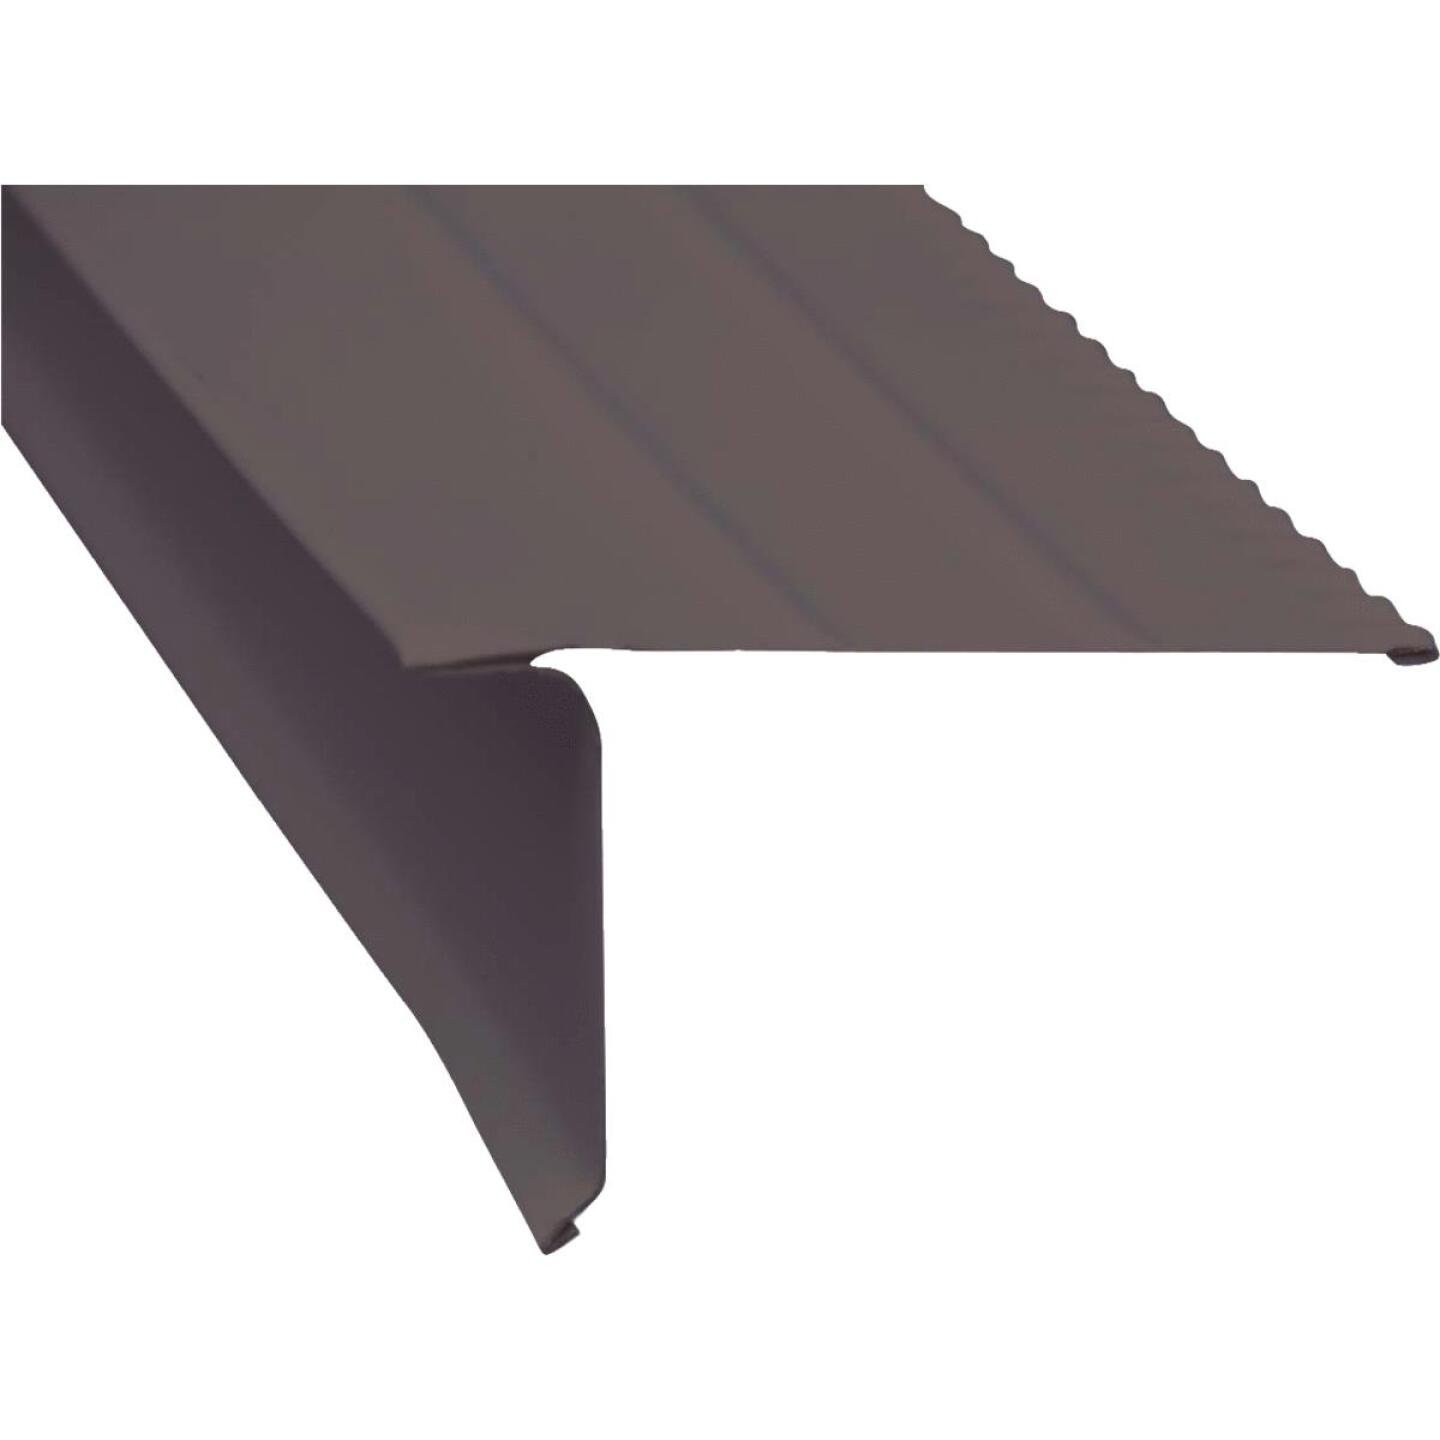 Amerimax F5 Aluminum Drip Edge Flashing, Brown Image 1